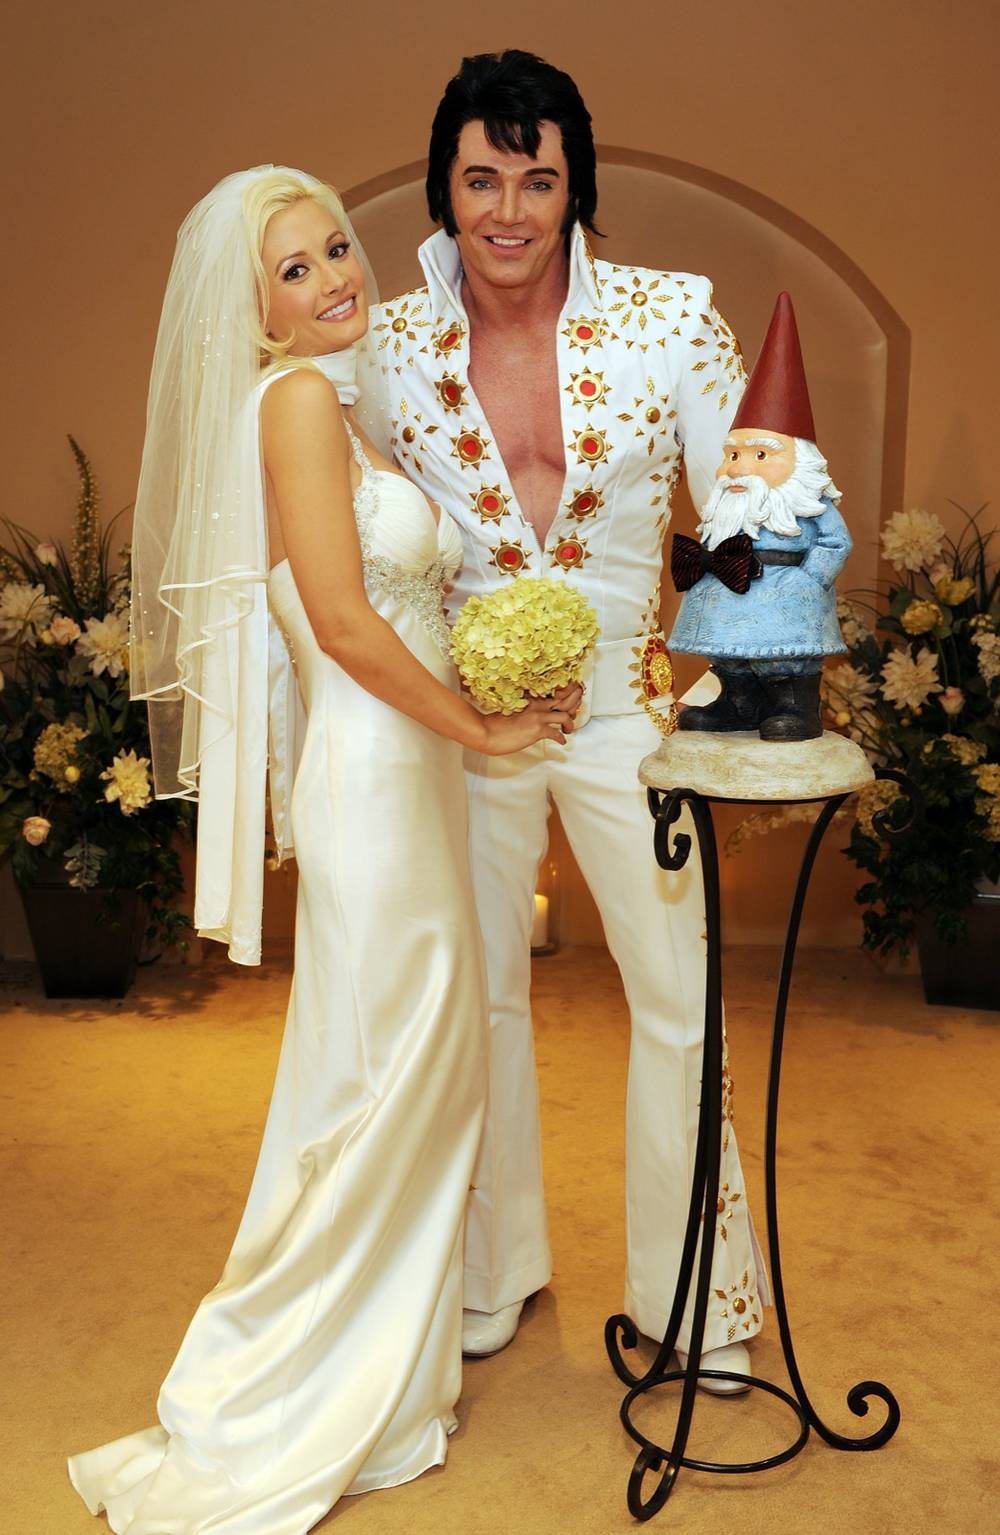 Only In Vegas Holly Madison An Elvis Presley Lookalike And The Travelocity Gnome